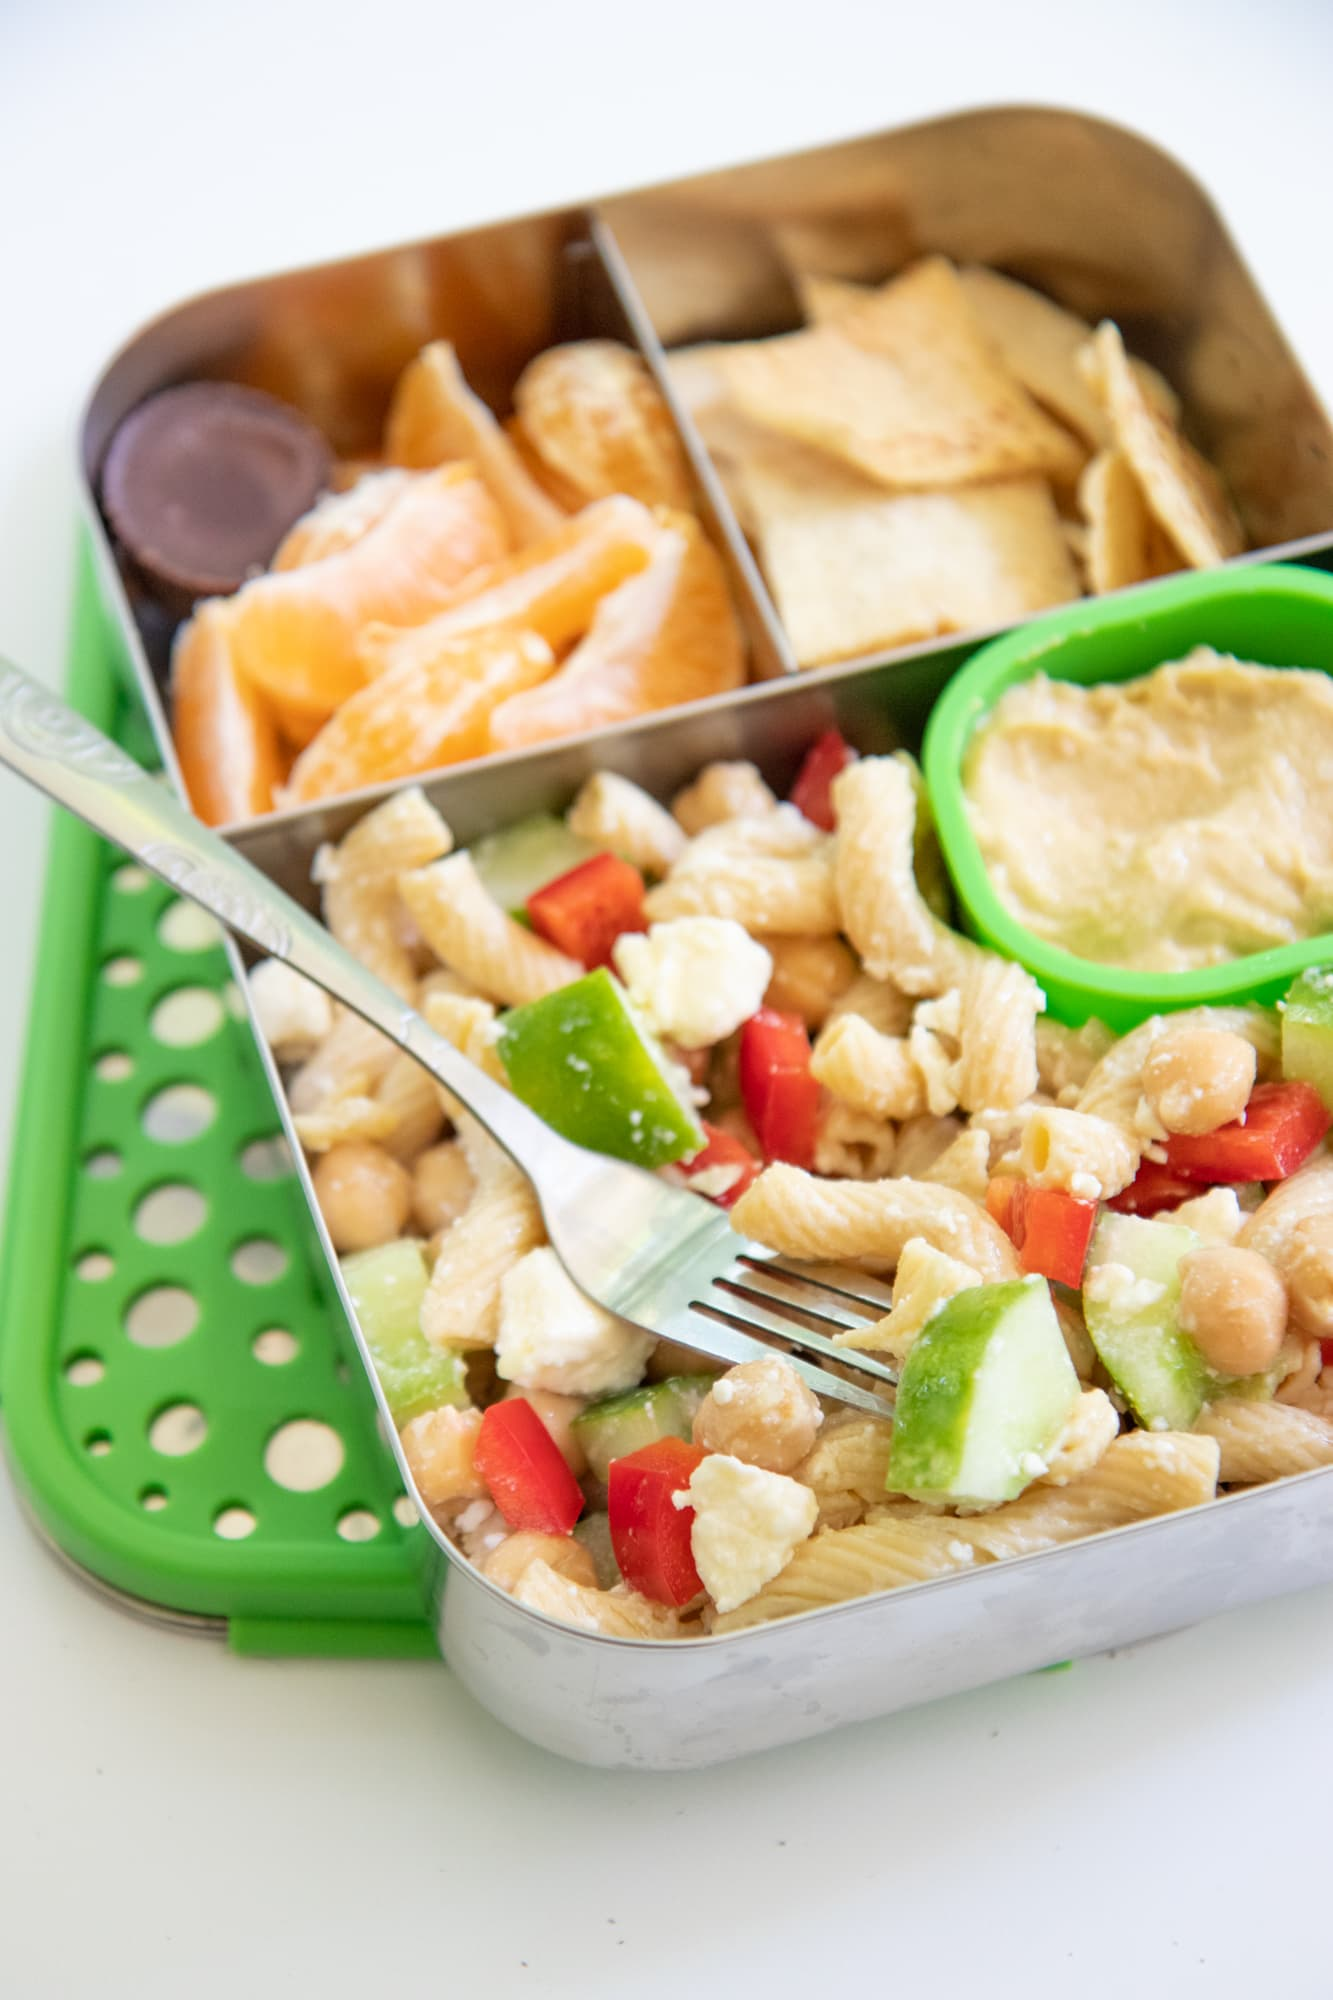 Stainless steel lunchbox with pasta salad, orange slices, and pita chips.